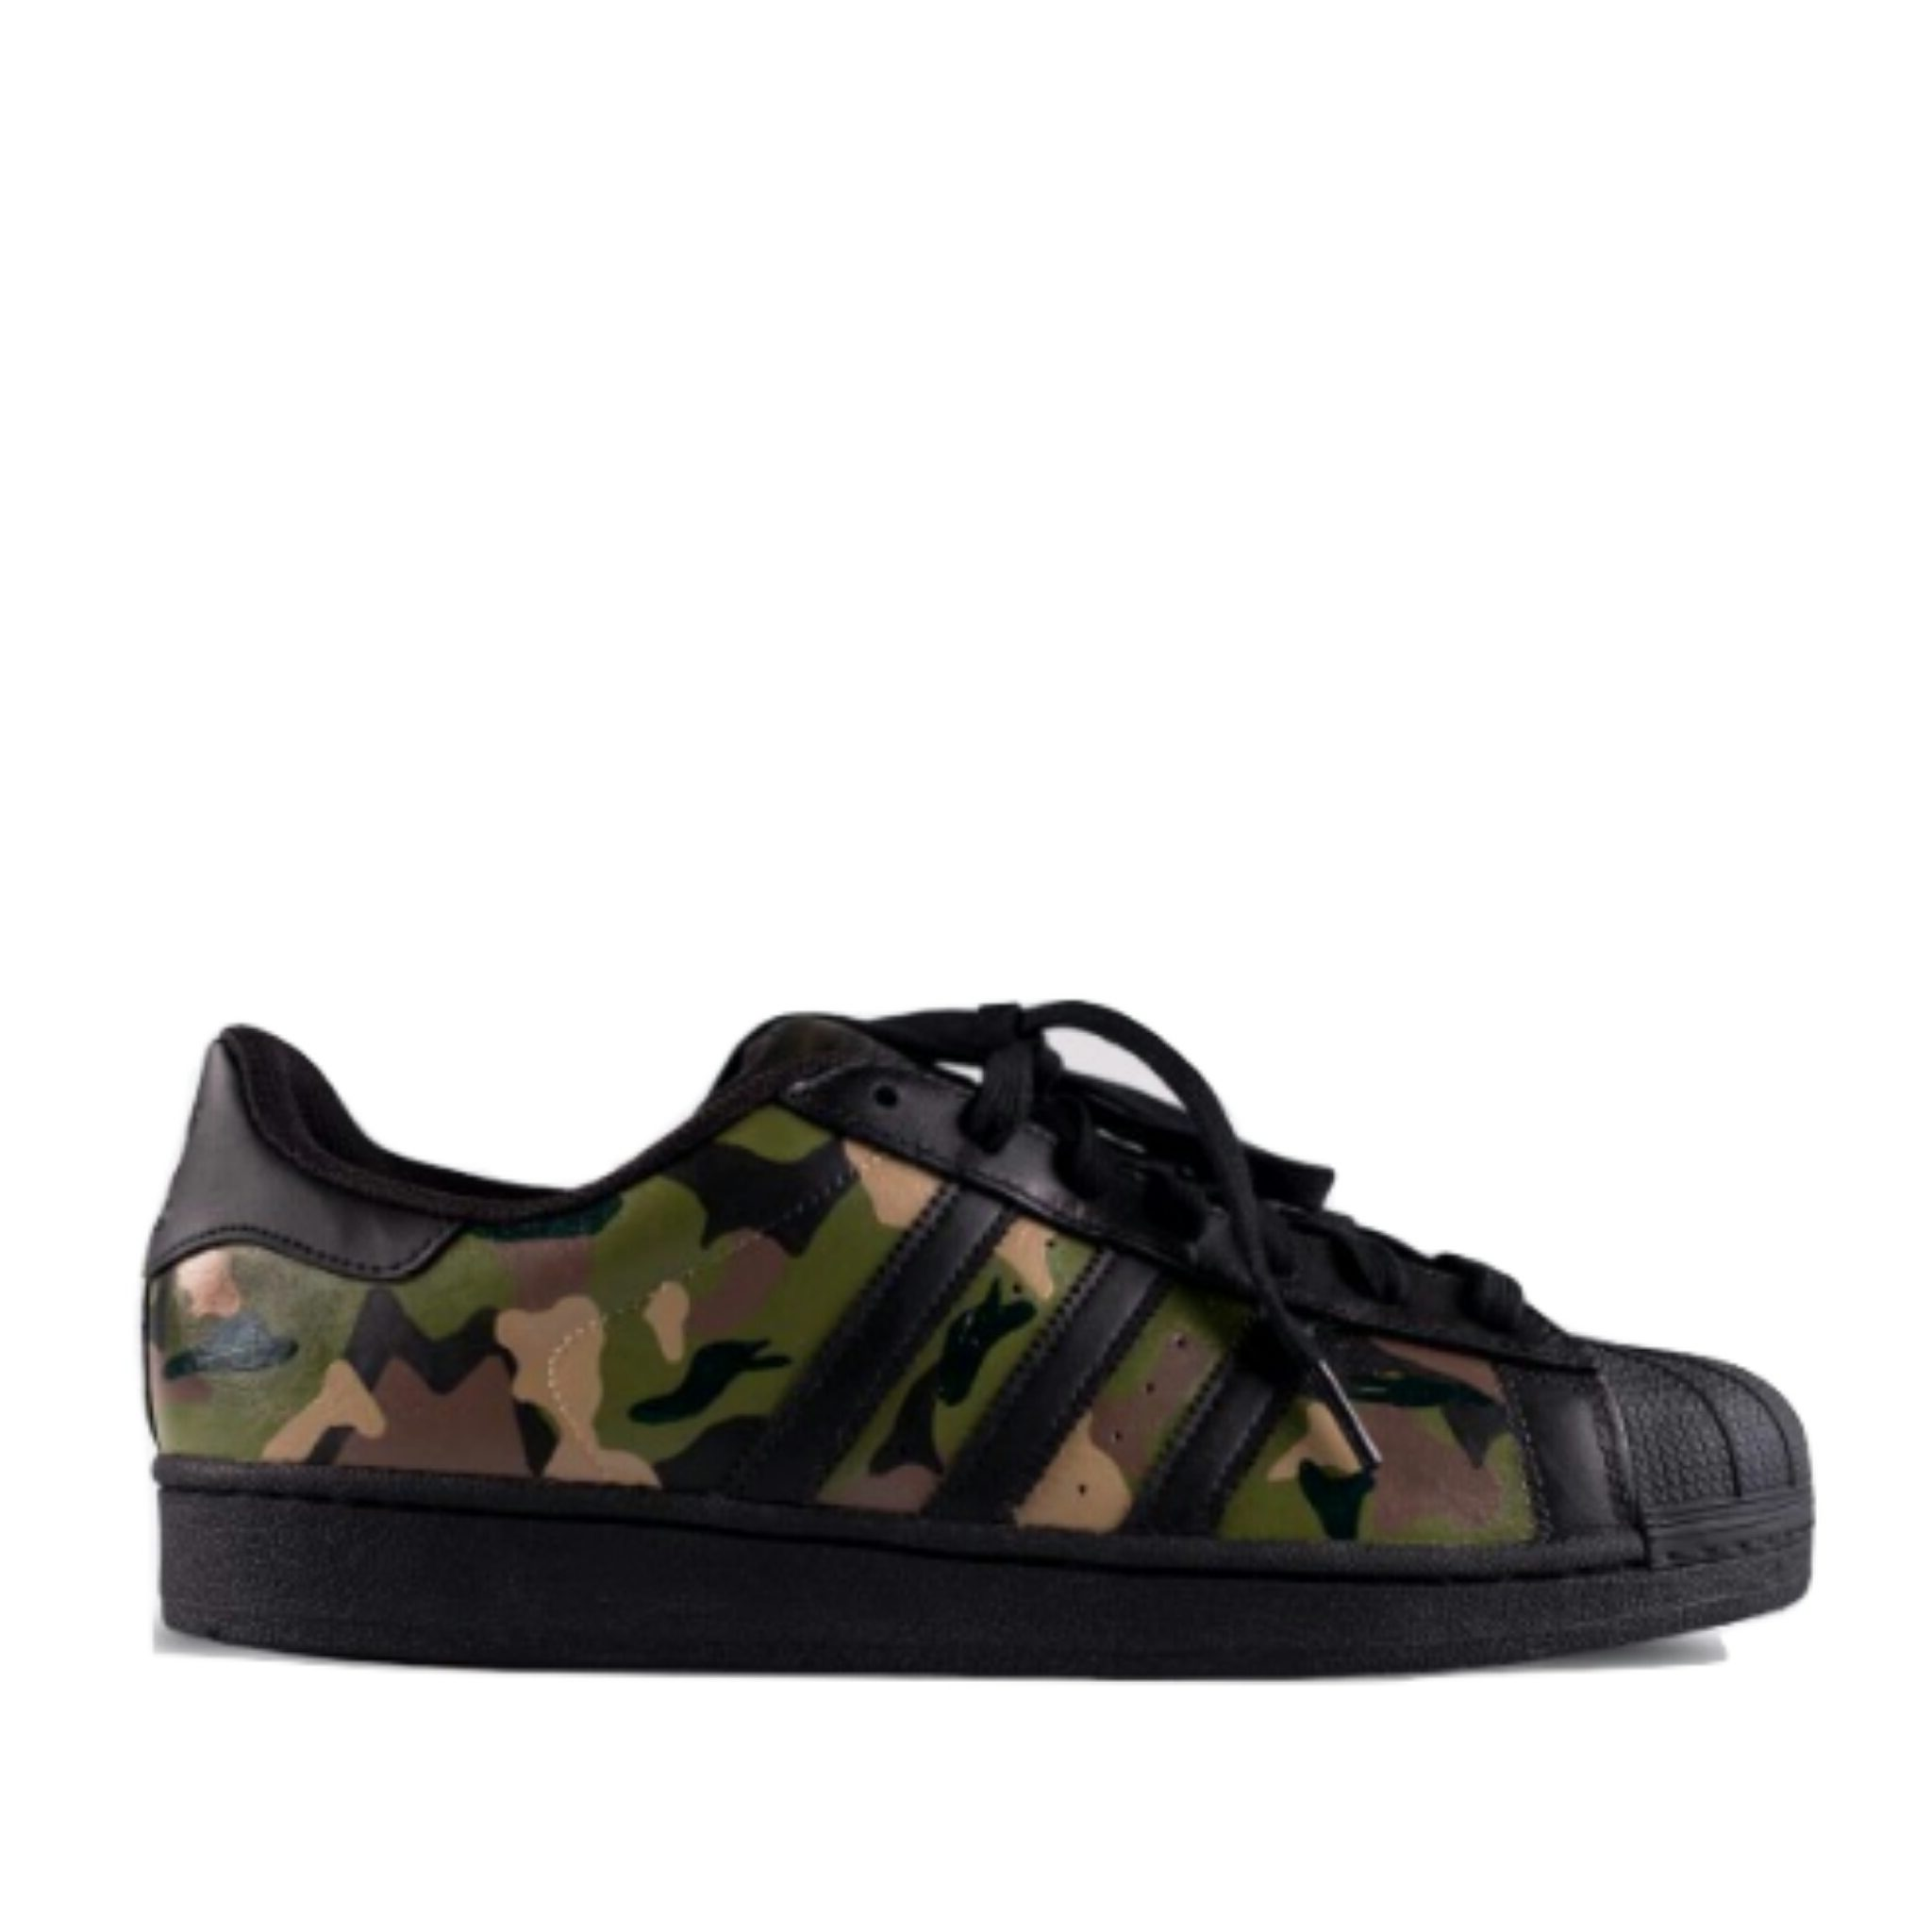 outlet store 406a8 d682f Adidas Superstar Earth Camo For Womens [PREMIUM MATERIALS]